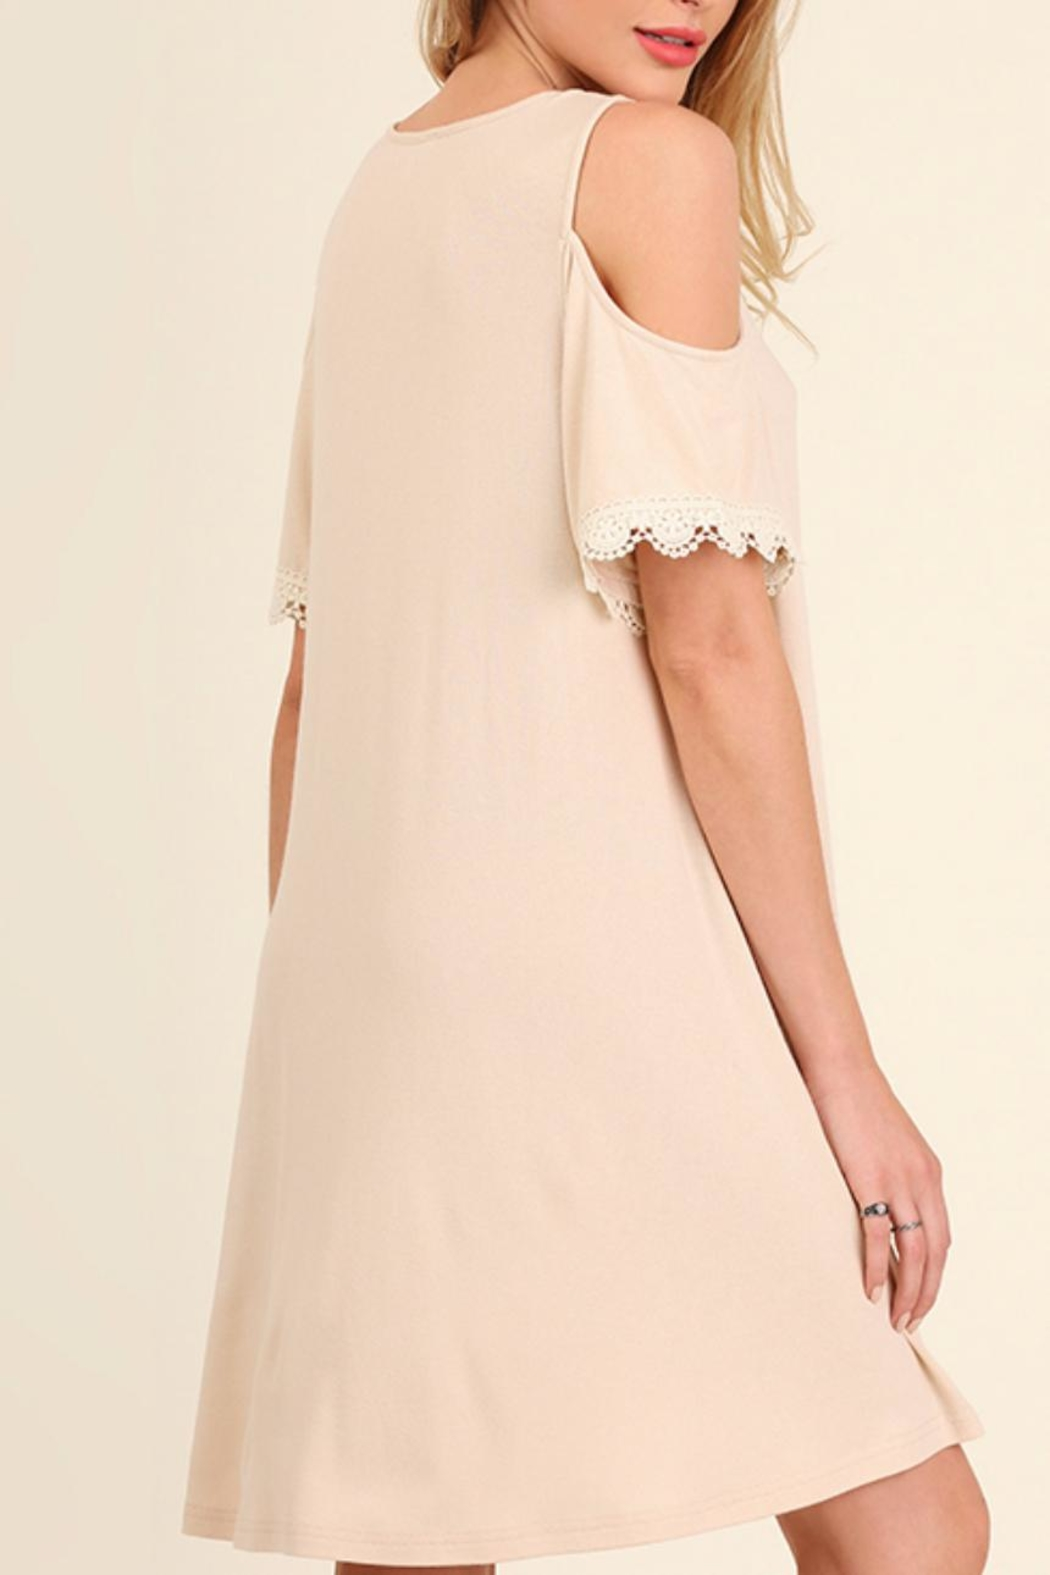 Umgee USA Open Shoulder Dress - Side Cropped Image